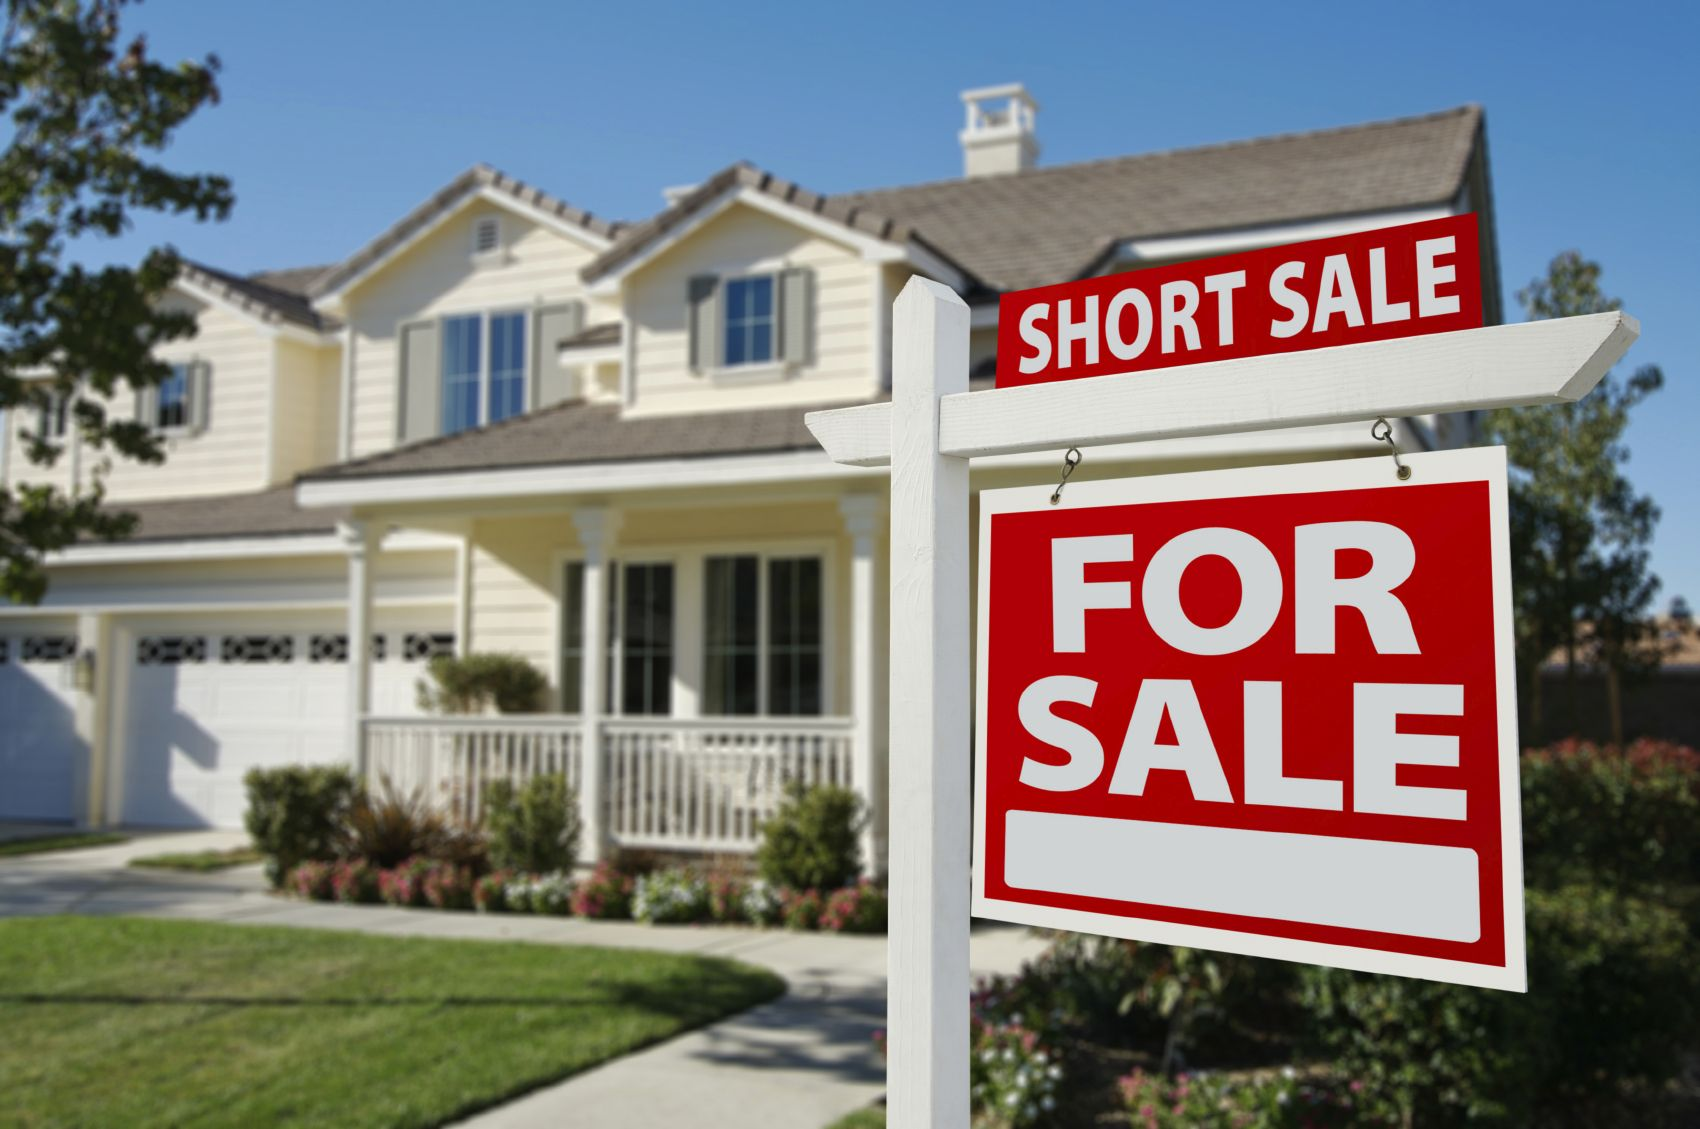 In A Nutshell With Regards To Real Estate Transactions A Short